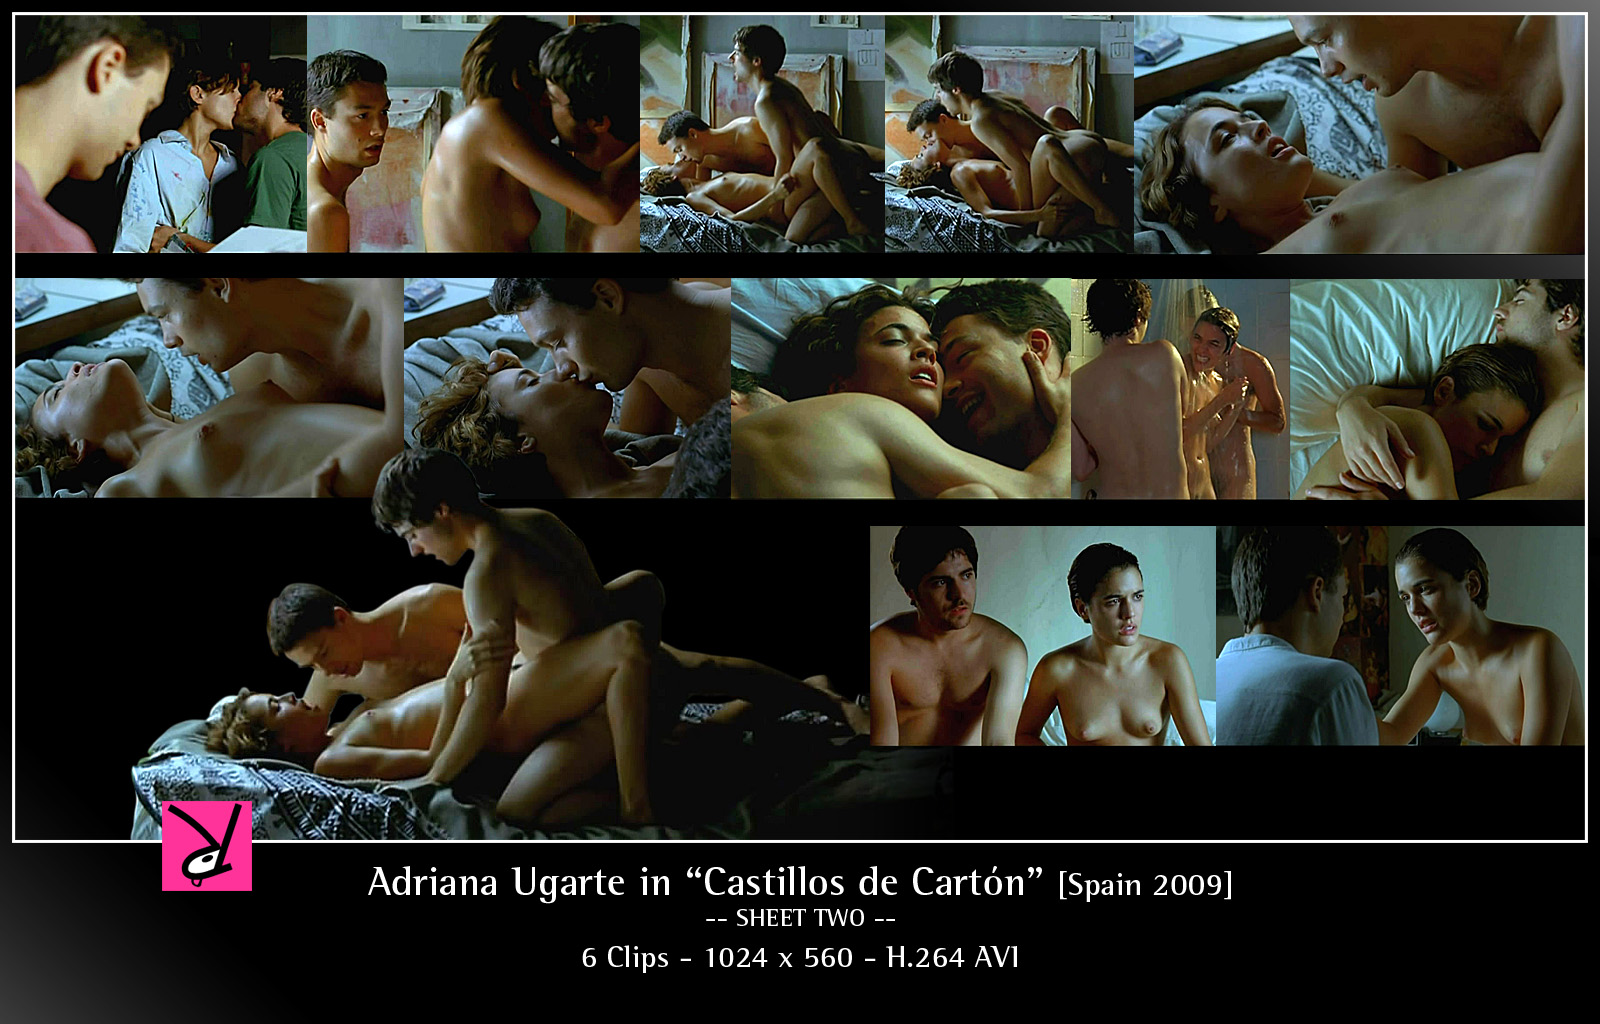 adriana-ugarte-golaya-video